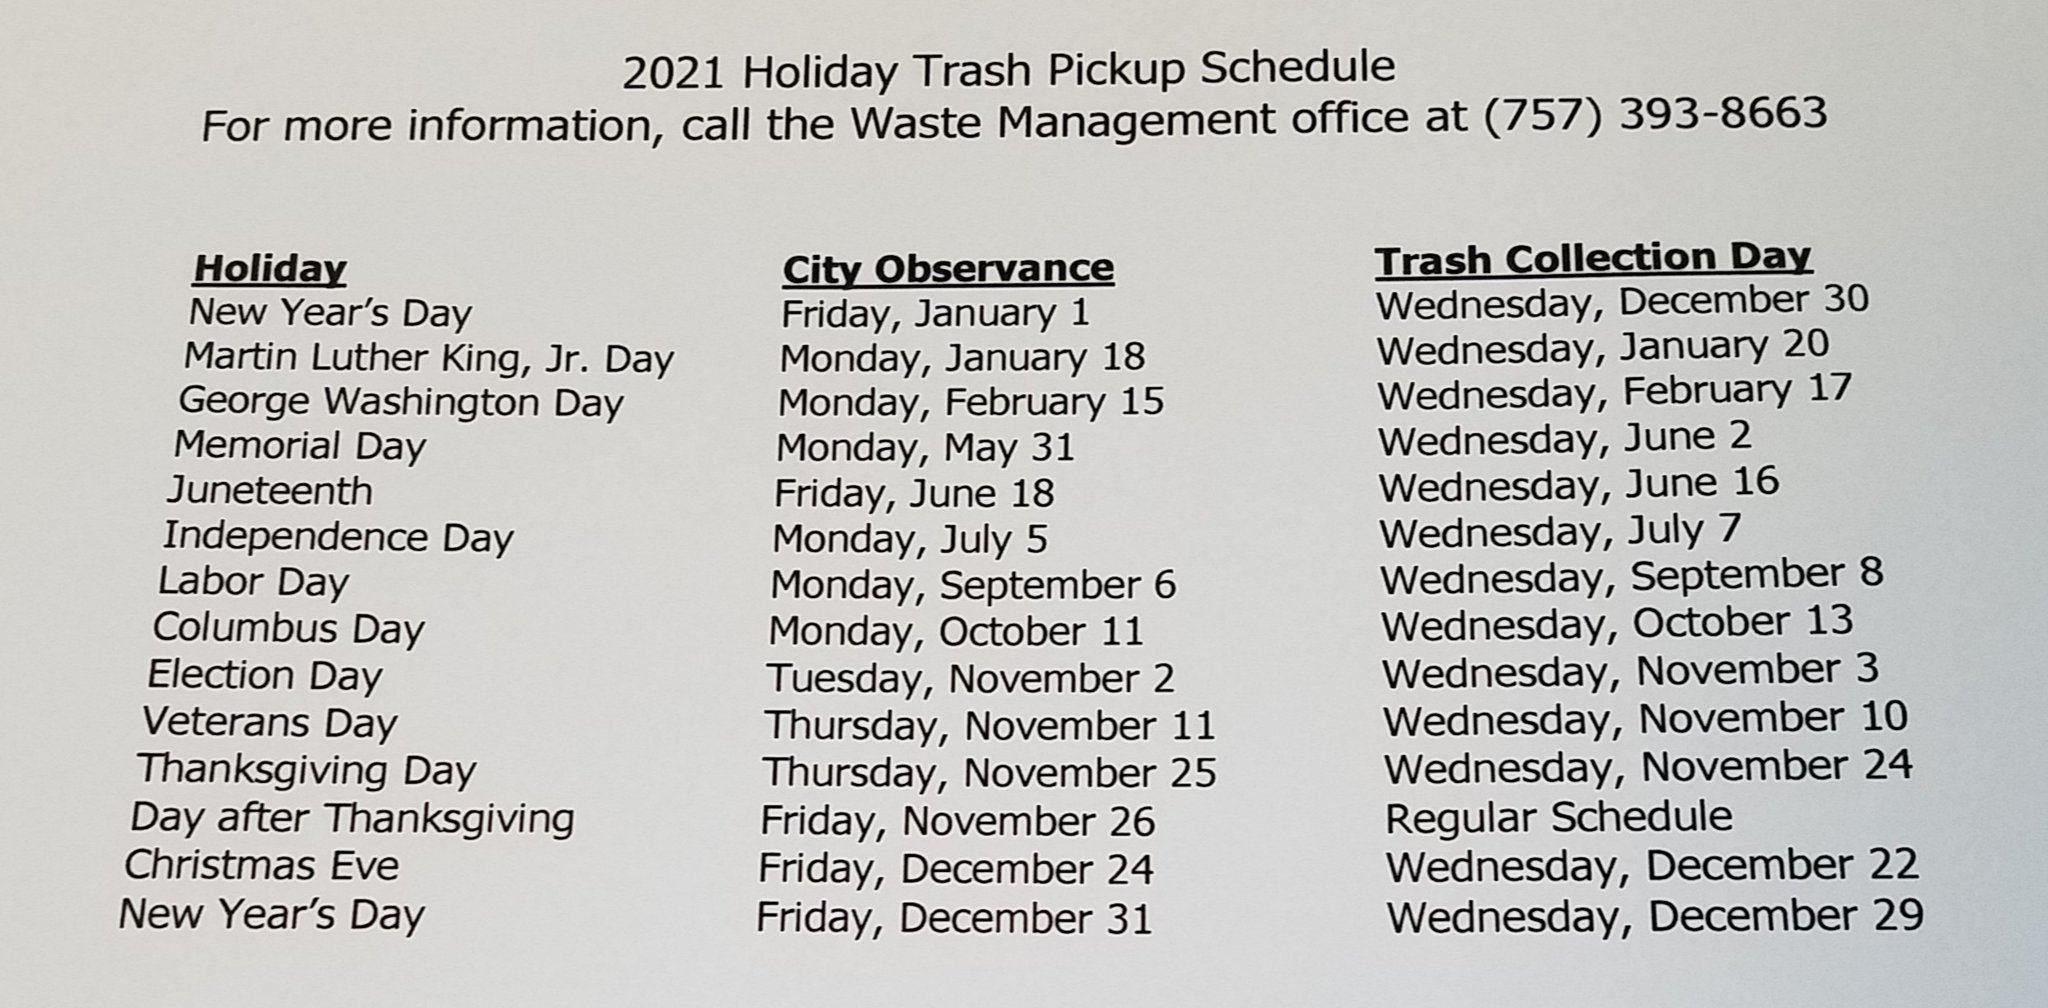 Trash Pickup Schedule Christmas 2021 City Of Portsmouth On Twitter Here S The 2021 Holiday Trash Pickup Schedule Please Print Out Save And Post On Your Fridge The Schedule Will Be Posted On The Website Asap Happy New